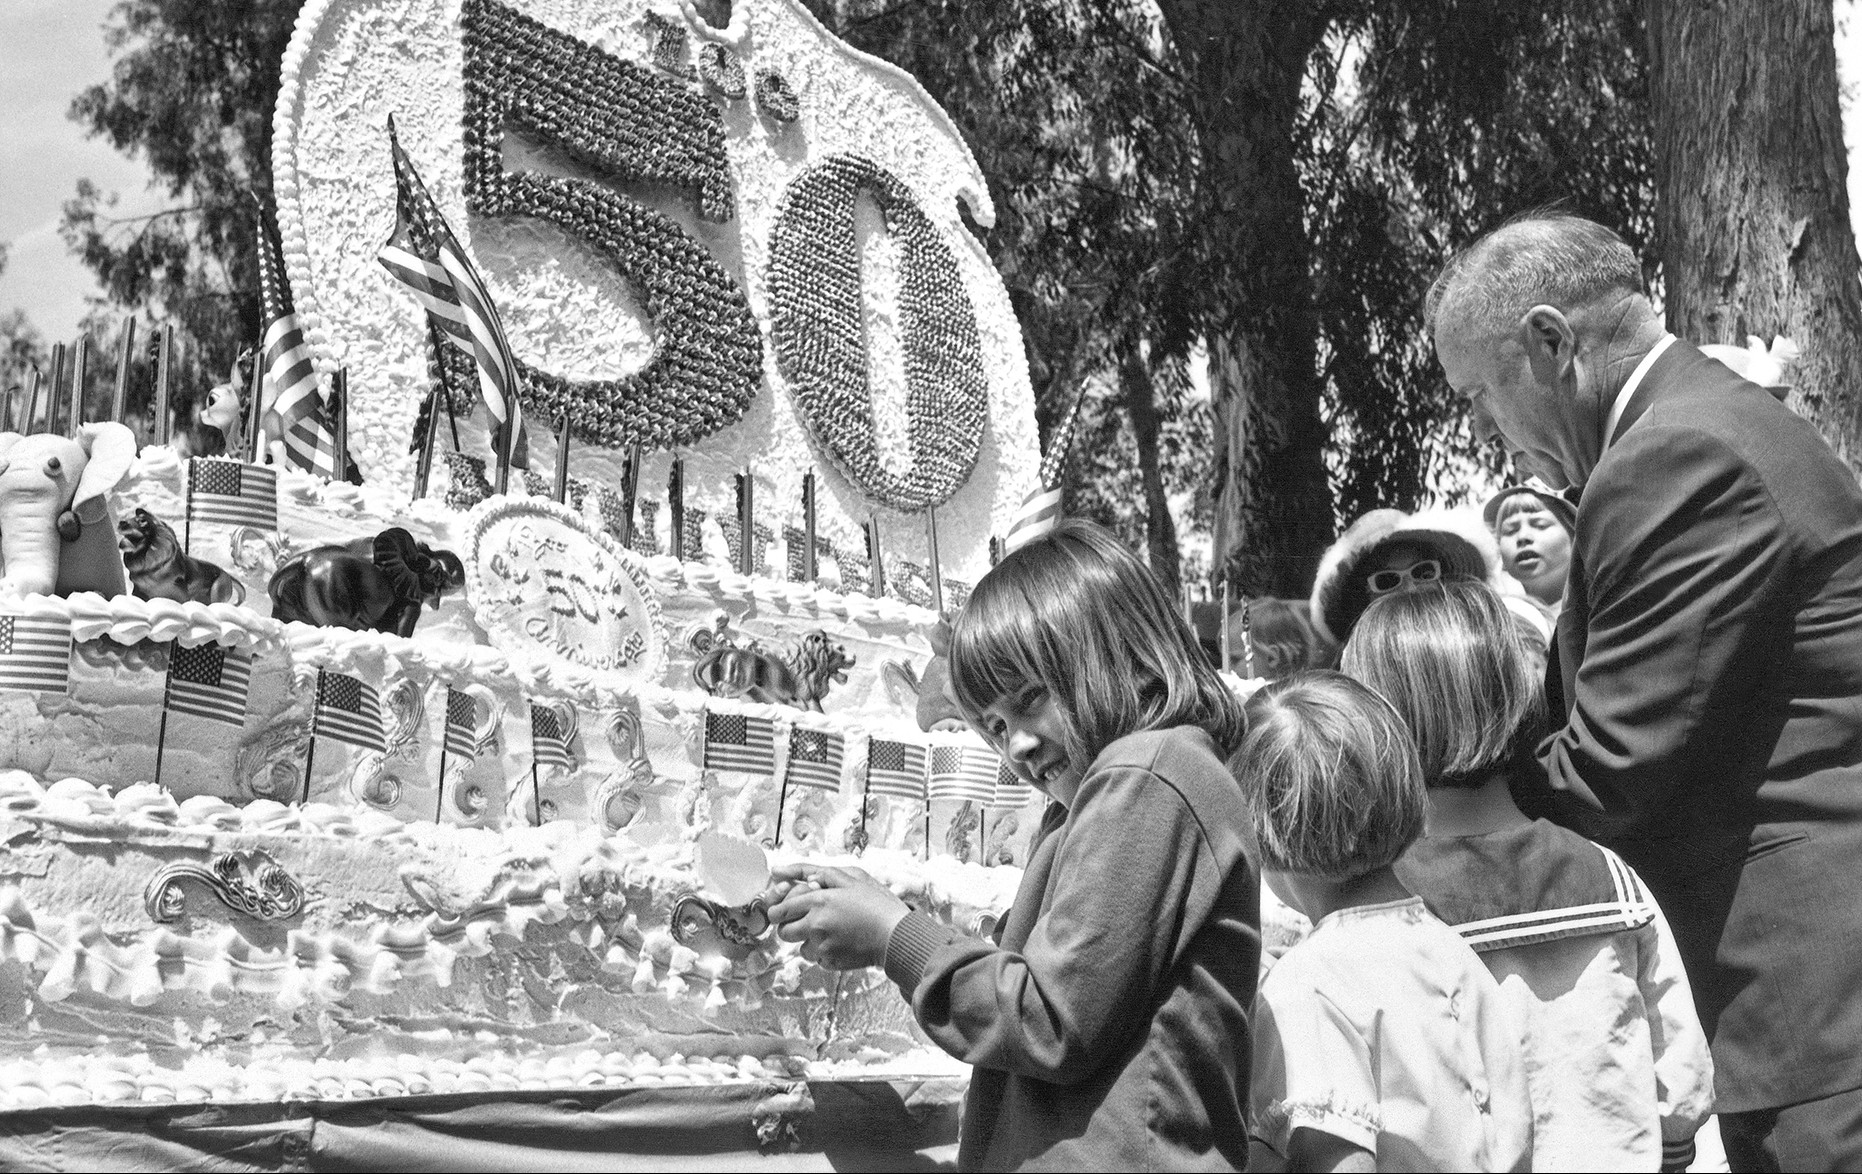 In honor of the Golden Jubilee celebration, a birthday party for the children of San Diego was held at the Zoo on April 3, 1966. A huge birthday cake composed of 314 sheet cakes was set up along the front plaza, and by the end of the day, more than 3,000 pieces of cake had been served to visitors who came to help celebrate. Dr. Schroeder himself (at right) helped to get the party started.